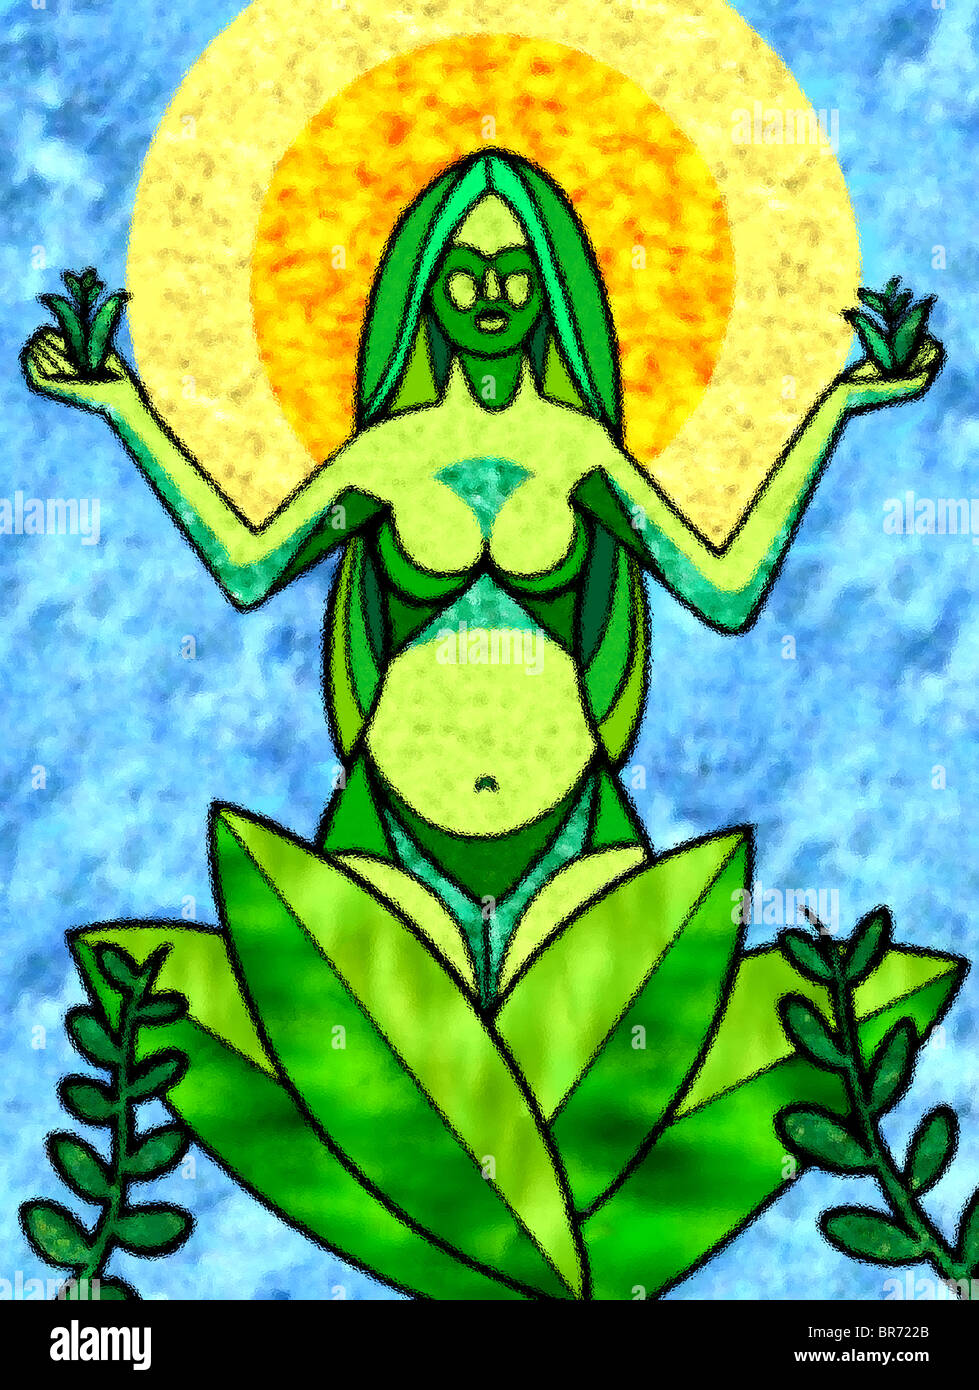 A graphical representation of mother earth - Stock Image